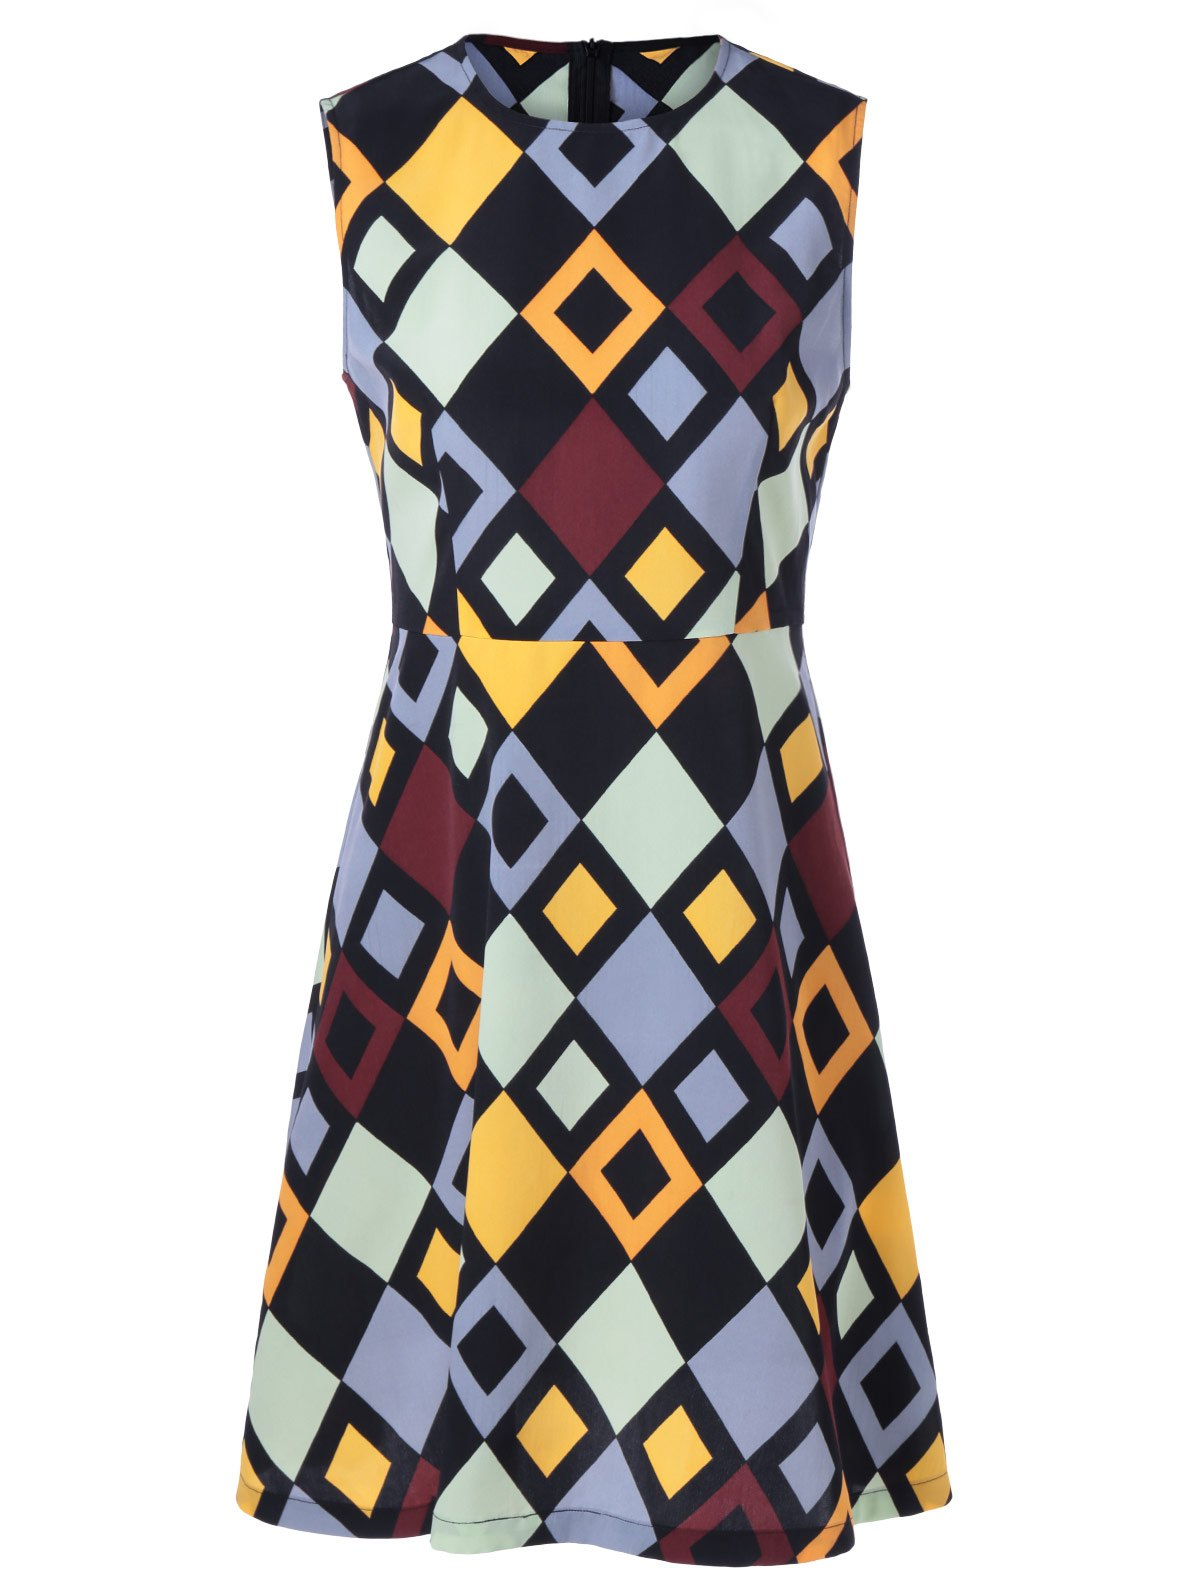 Fashionable Women's Fitted Round Neck Checkered Print Dress